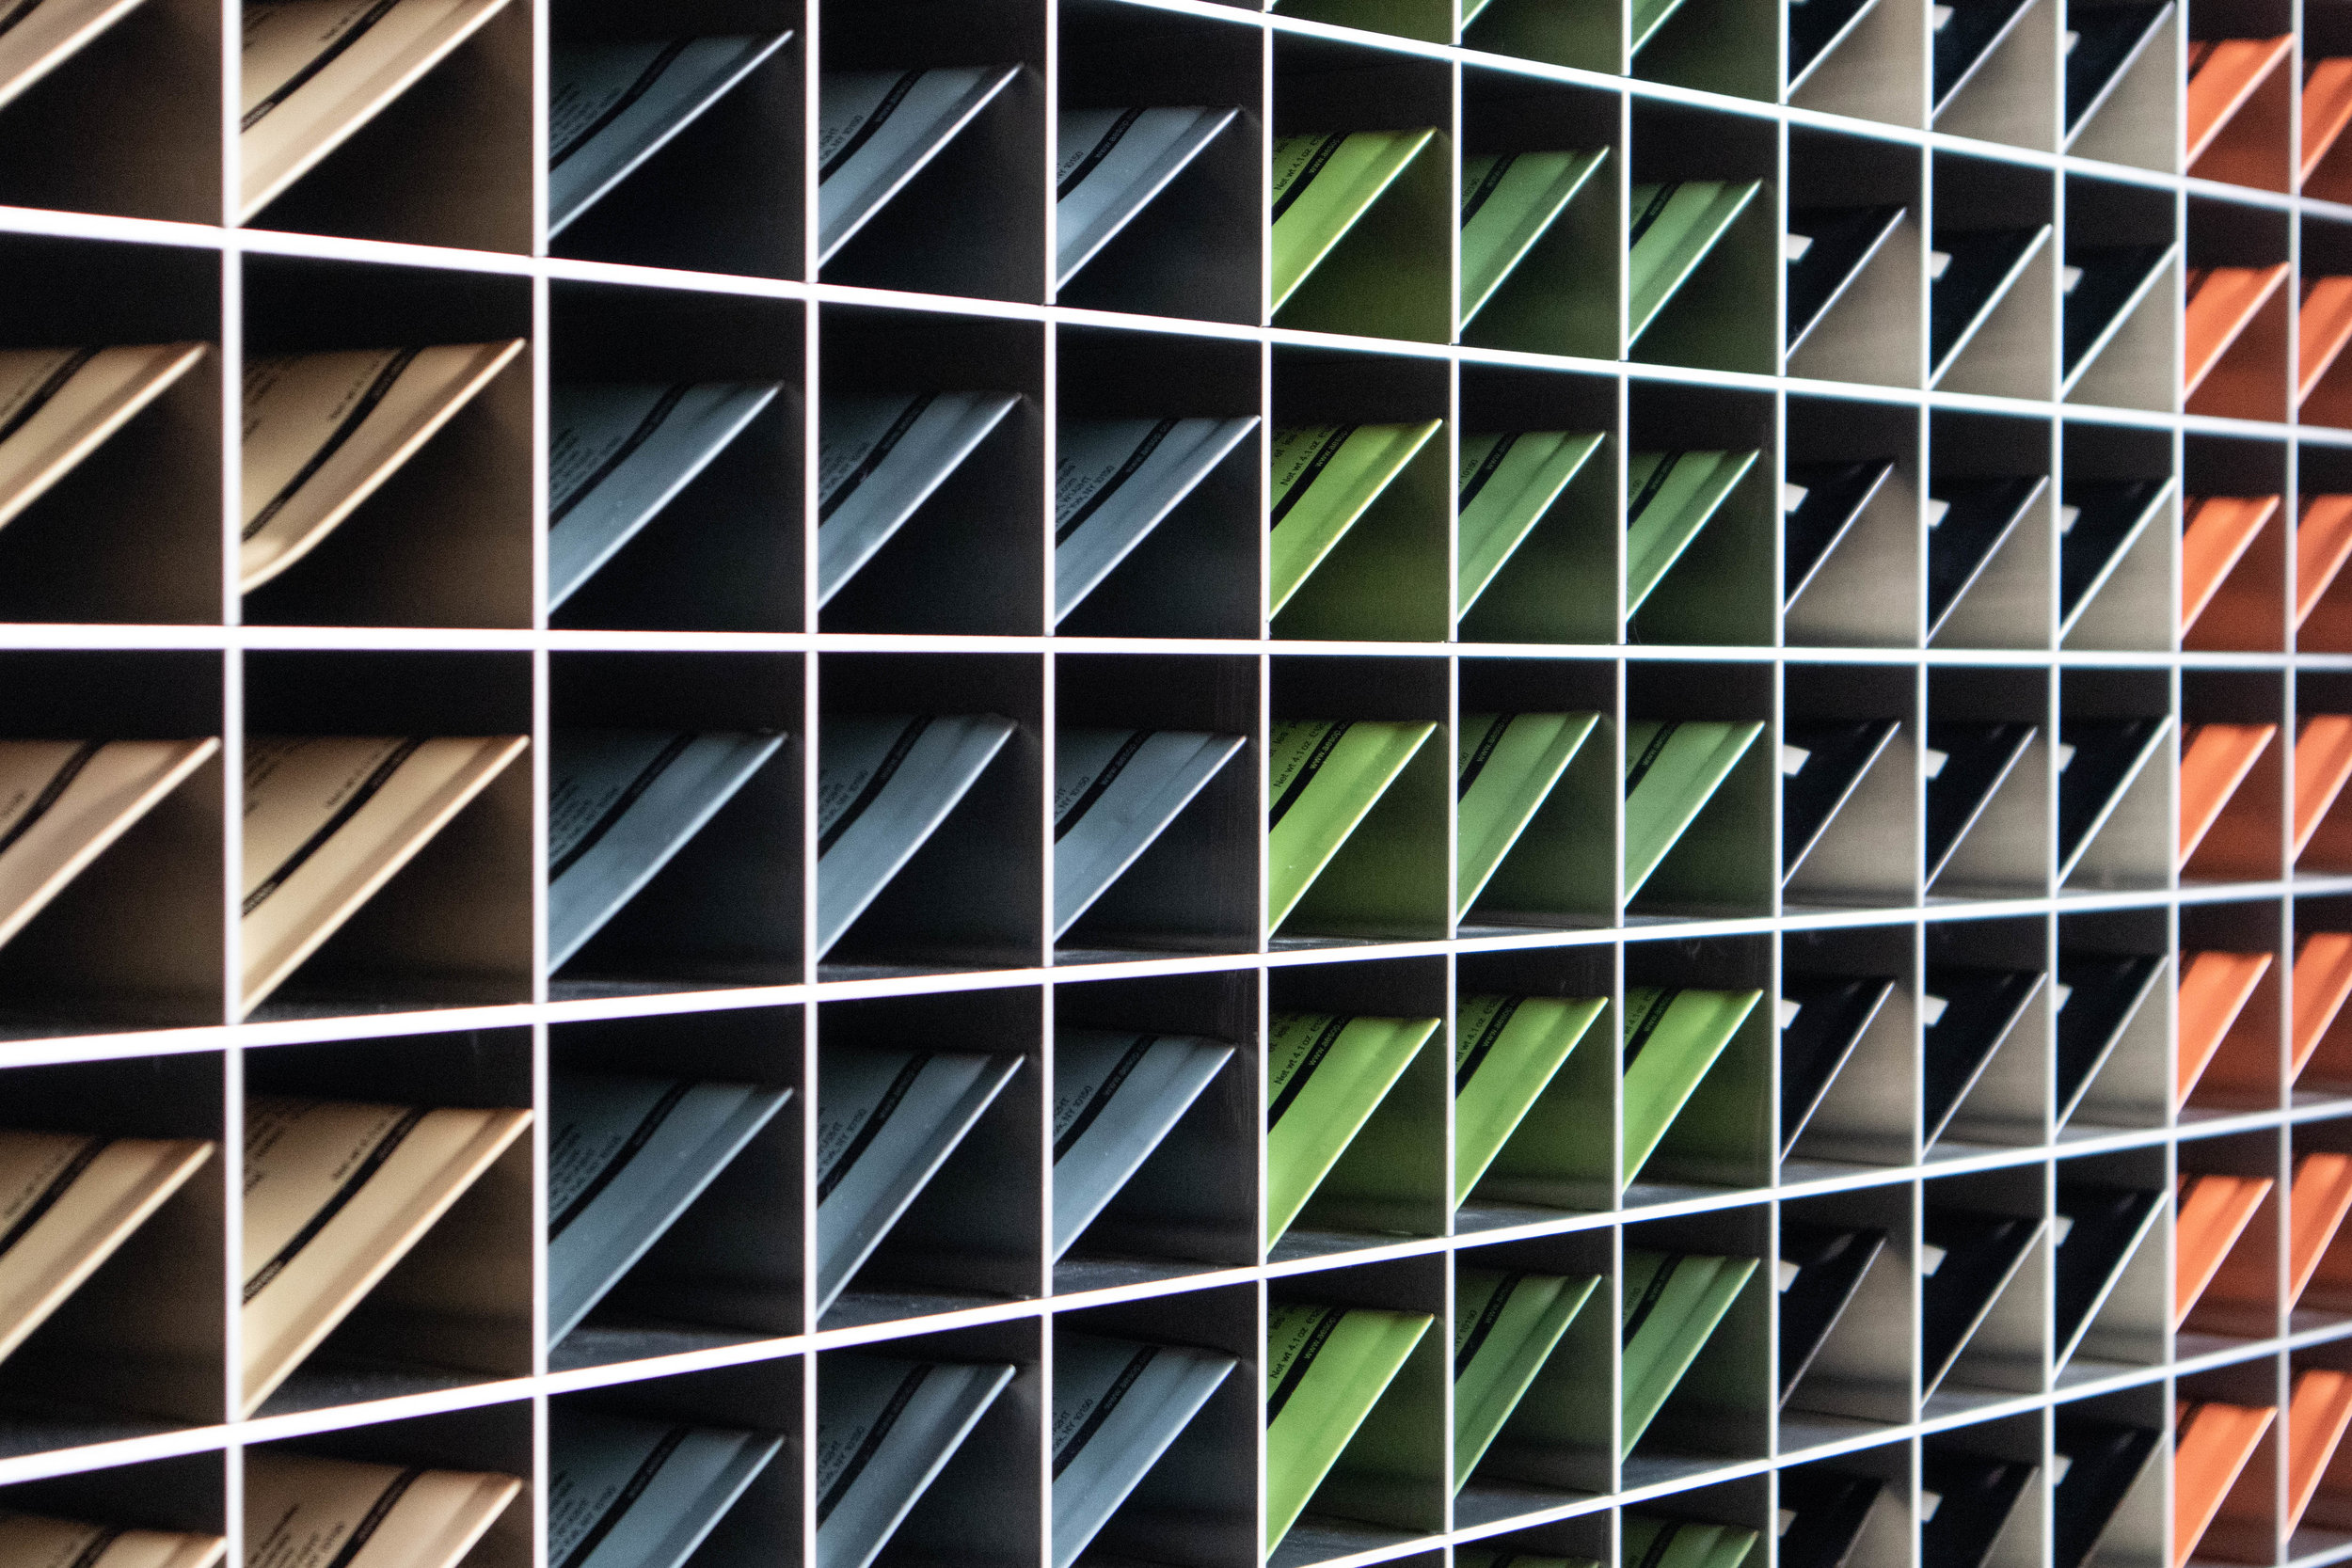 - Repetition of Aesop's own products create rhythm and beautiful patterns...